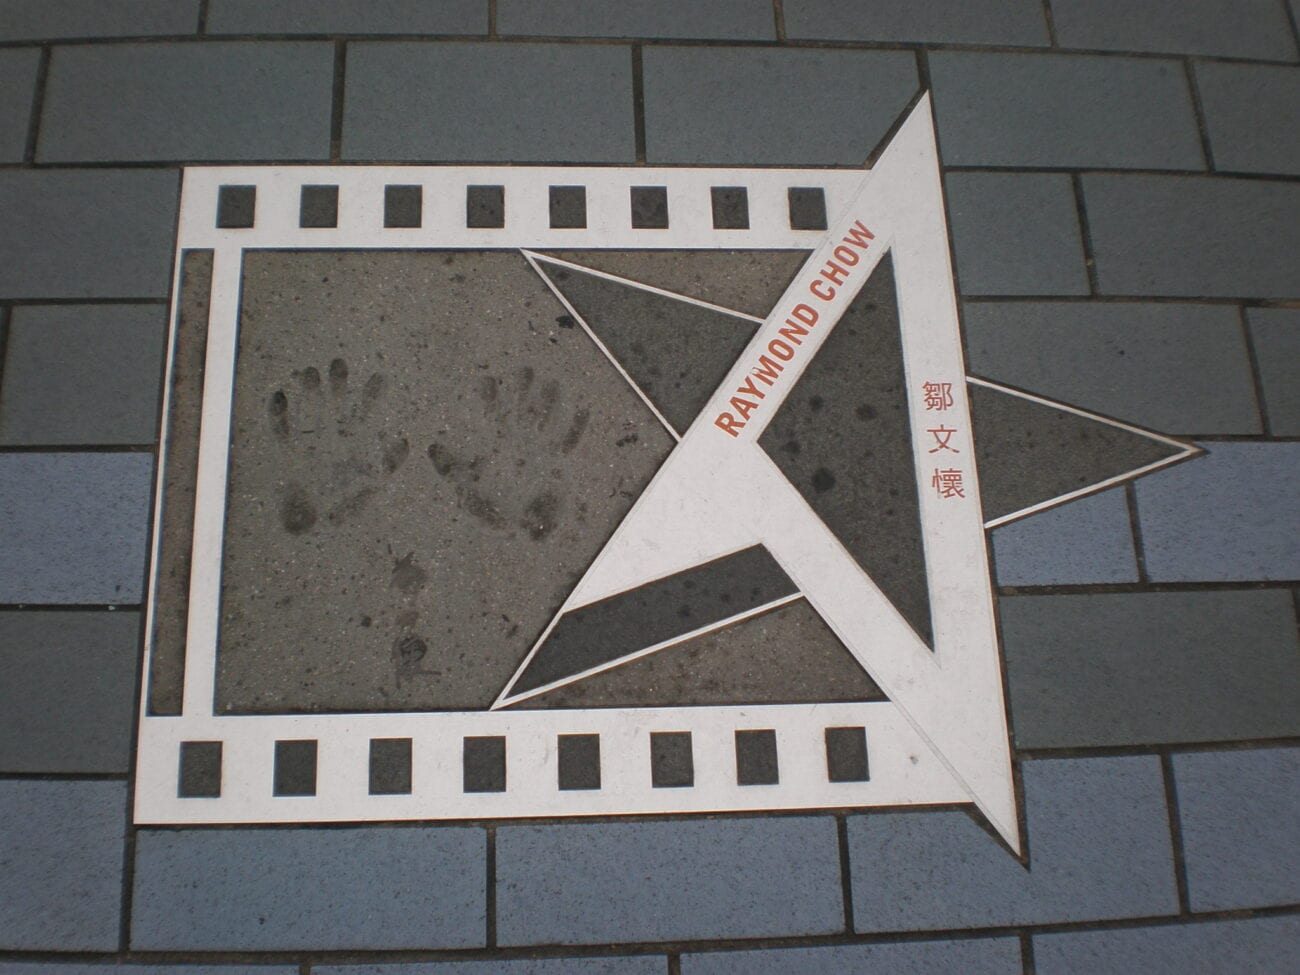 Raymond Chow's star on the Avenue of Stars, celebrating the career of the great producer.